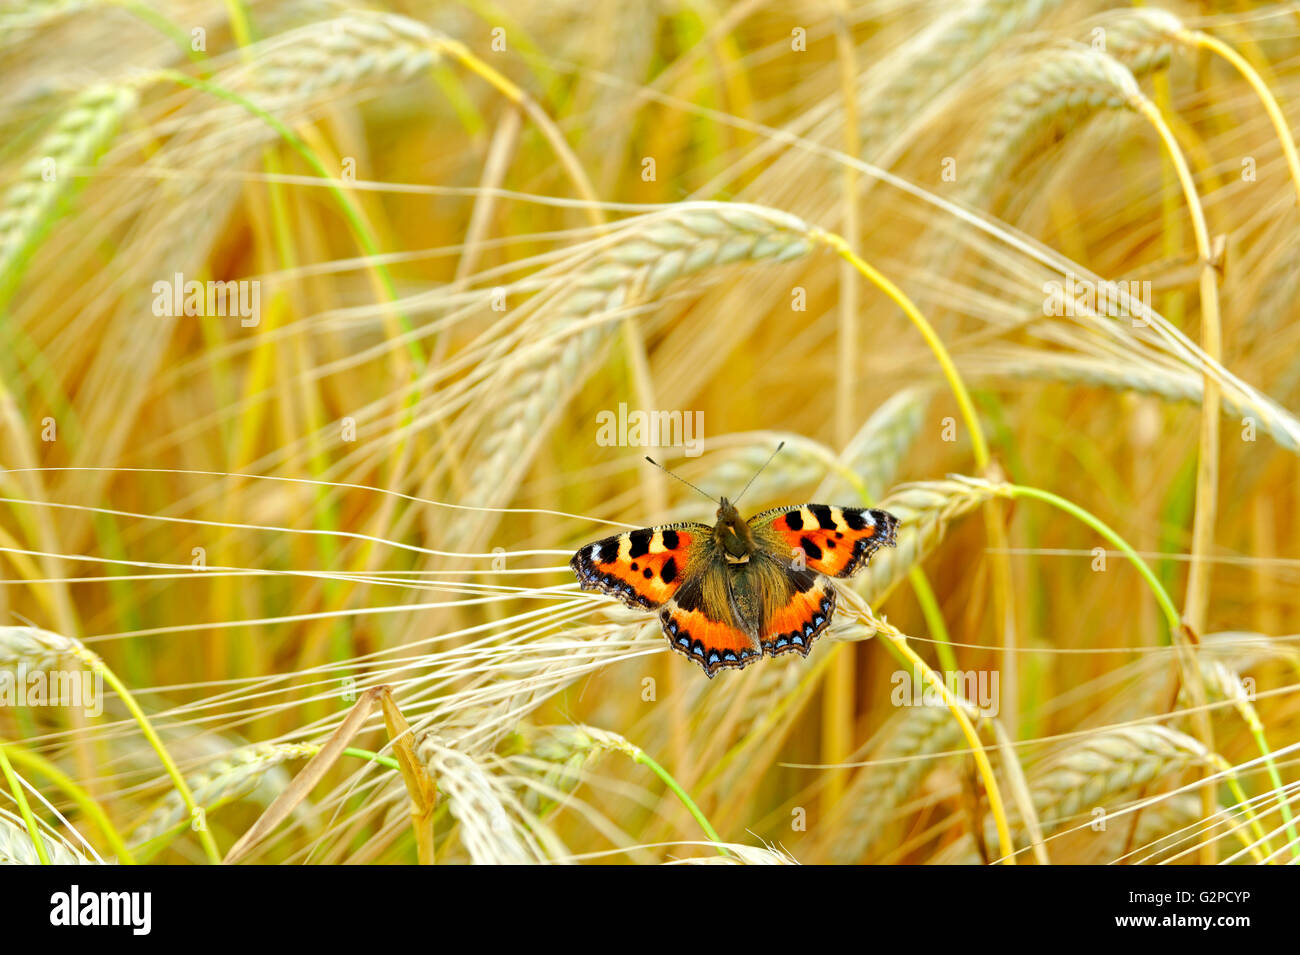 SMALL TORTOISESHELL BUTTERFLY IN A WHEAT FIELD - Stock Image